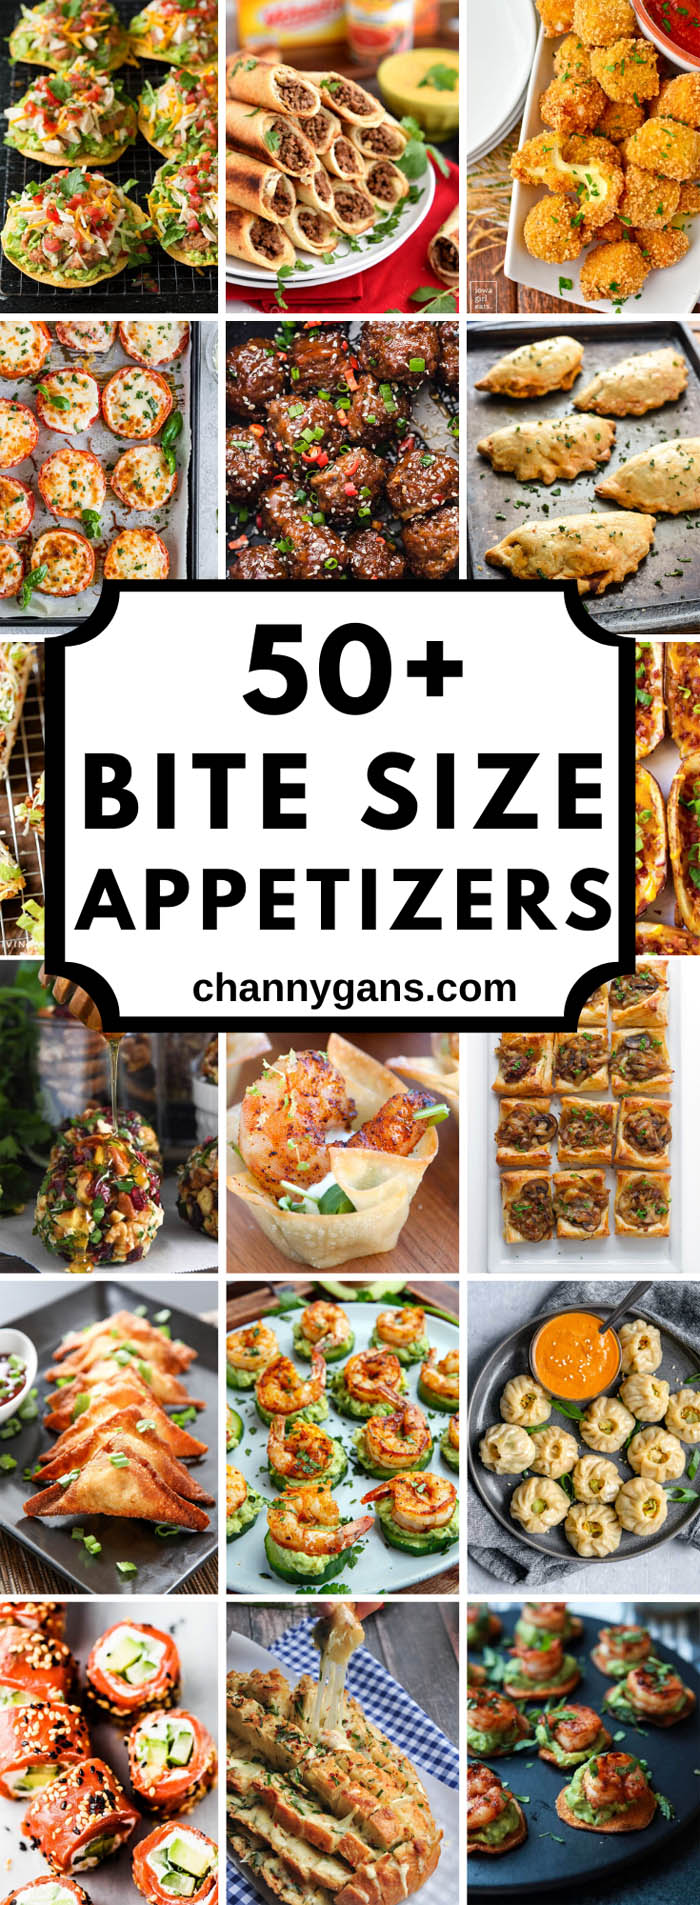 Looking for some easy bite size appetizers for your next event? These bite size appetizers make a great addition to any dinner party or event you might have.